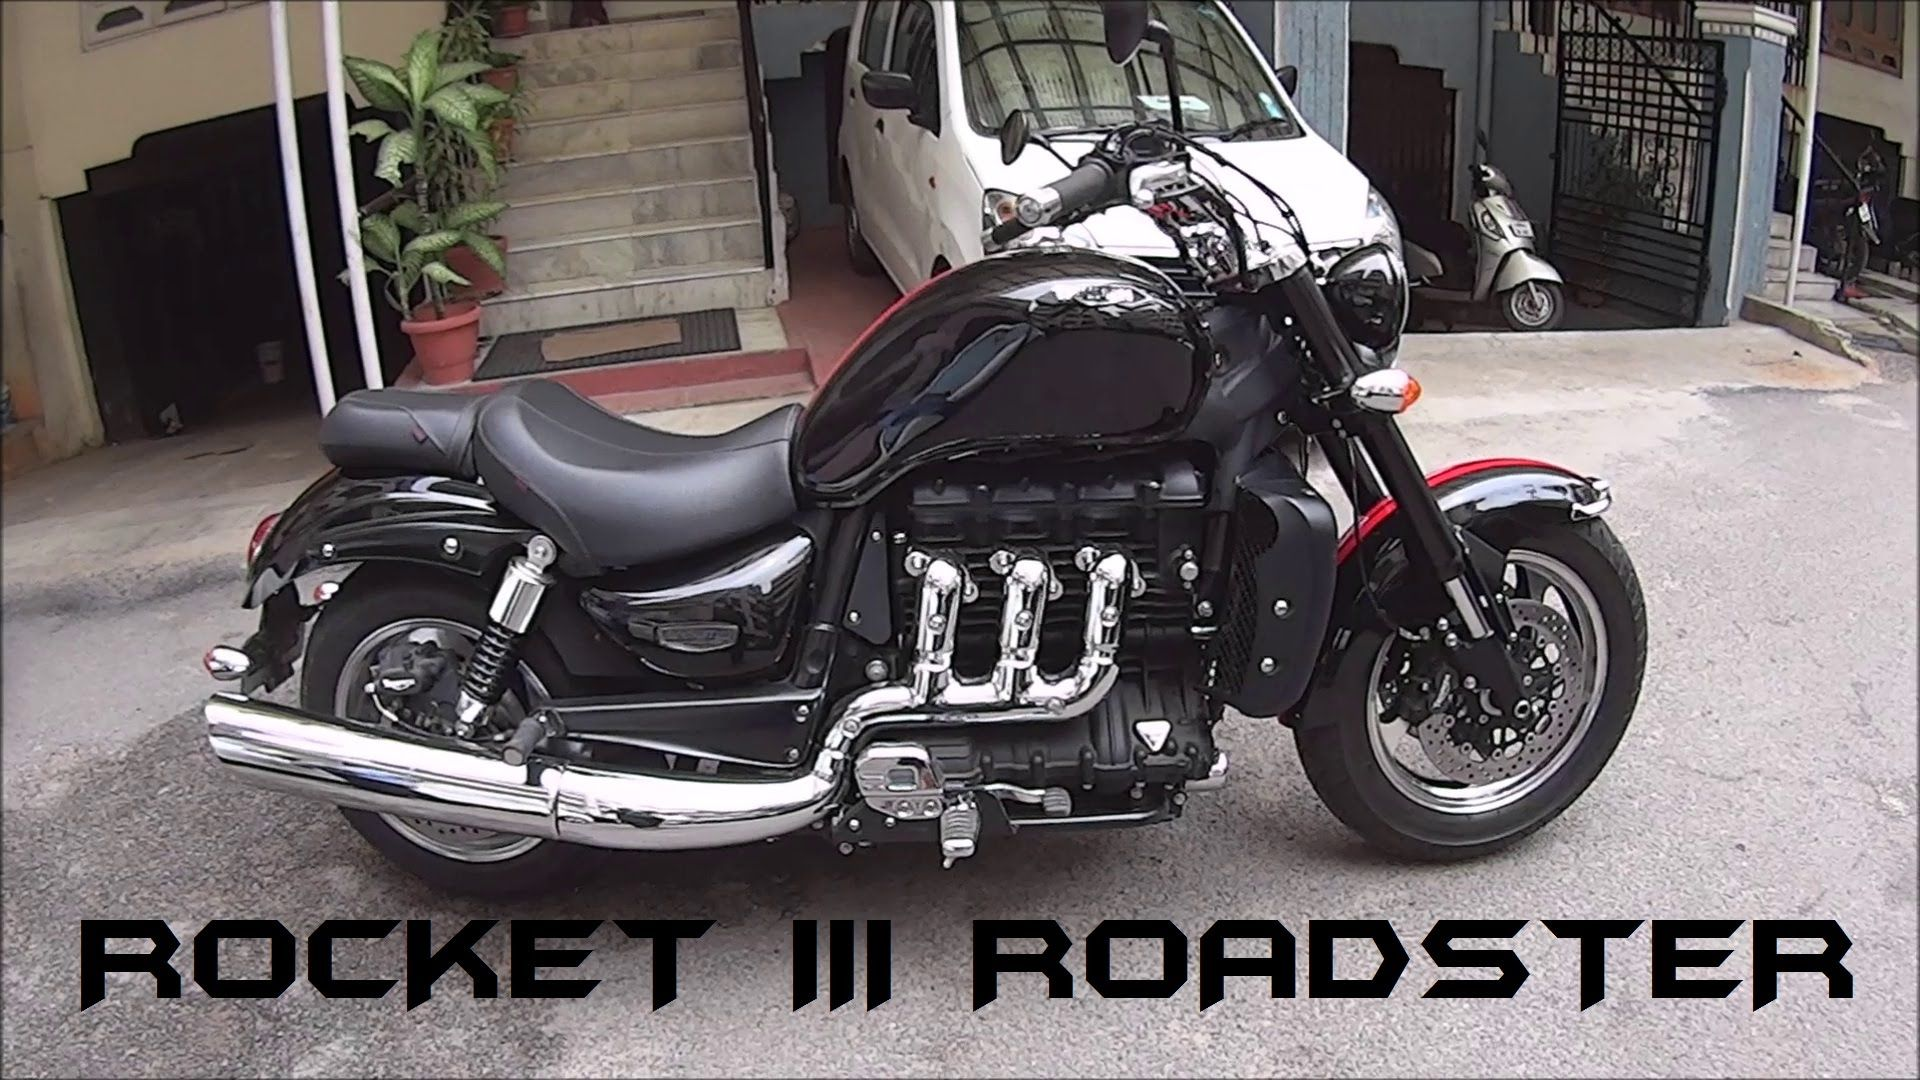 2016 triumph rocket iii roadster stock exhaust note. Black Bedroom Furniture Sets. Home Design Ideas